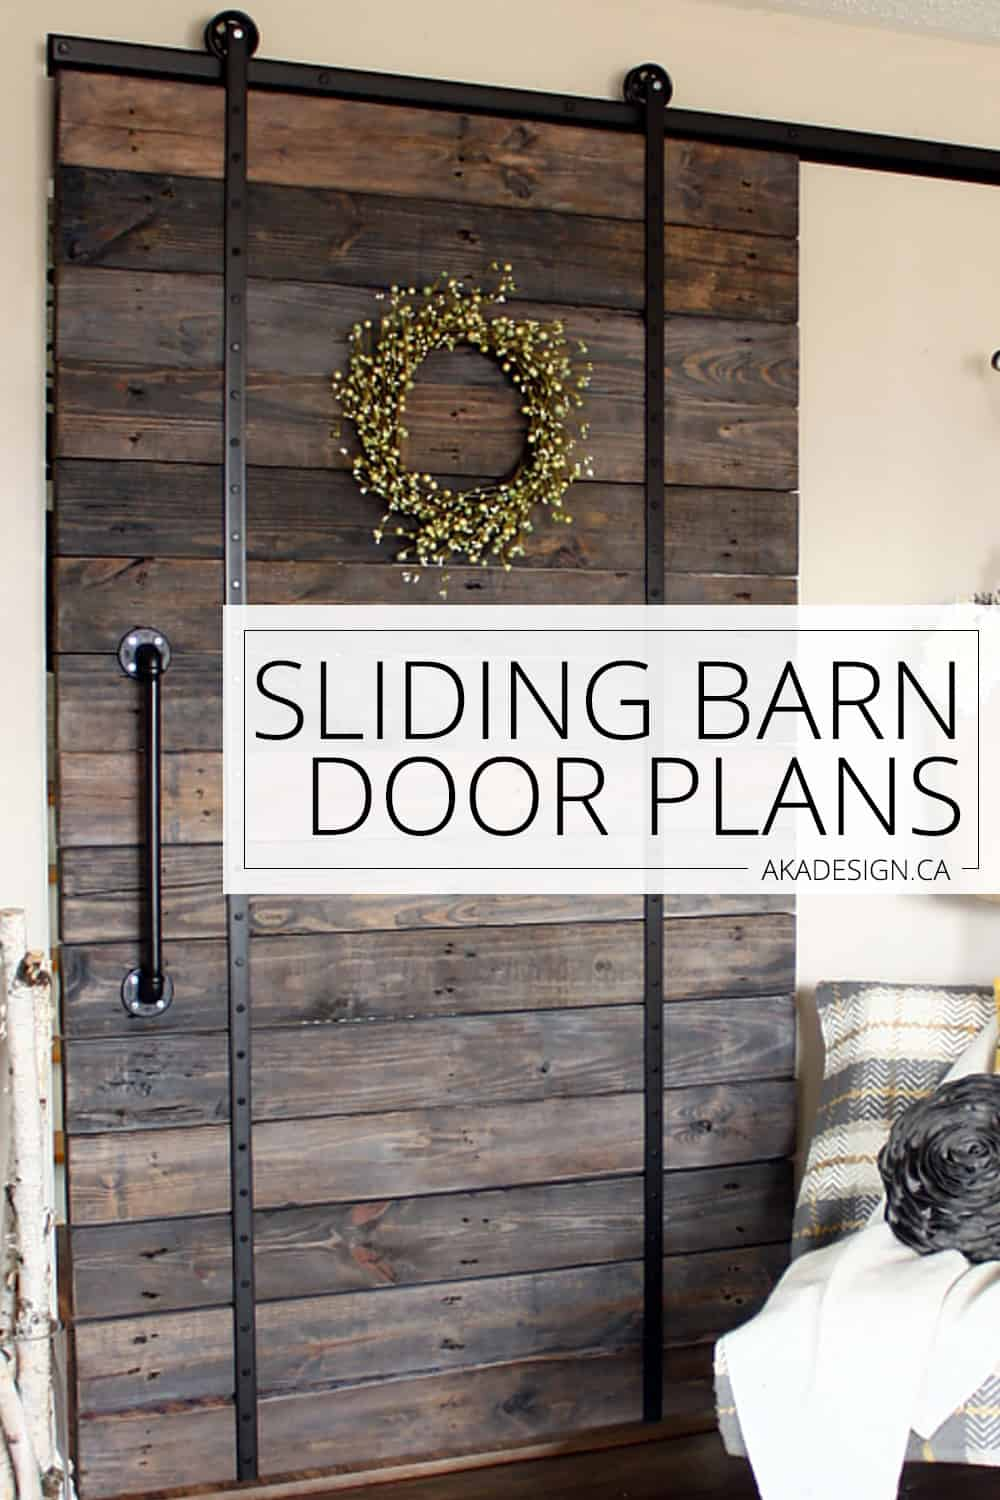 Sliding barn door plans. So much cheaper than the kits they sell.